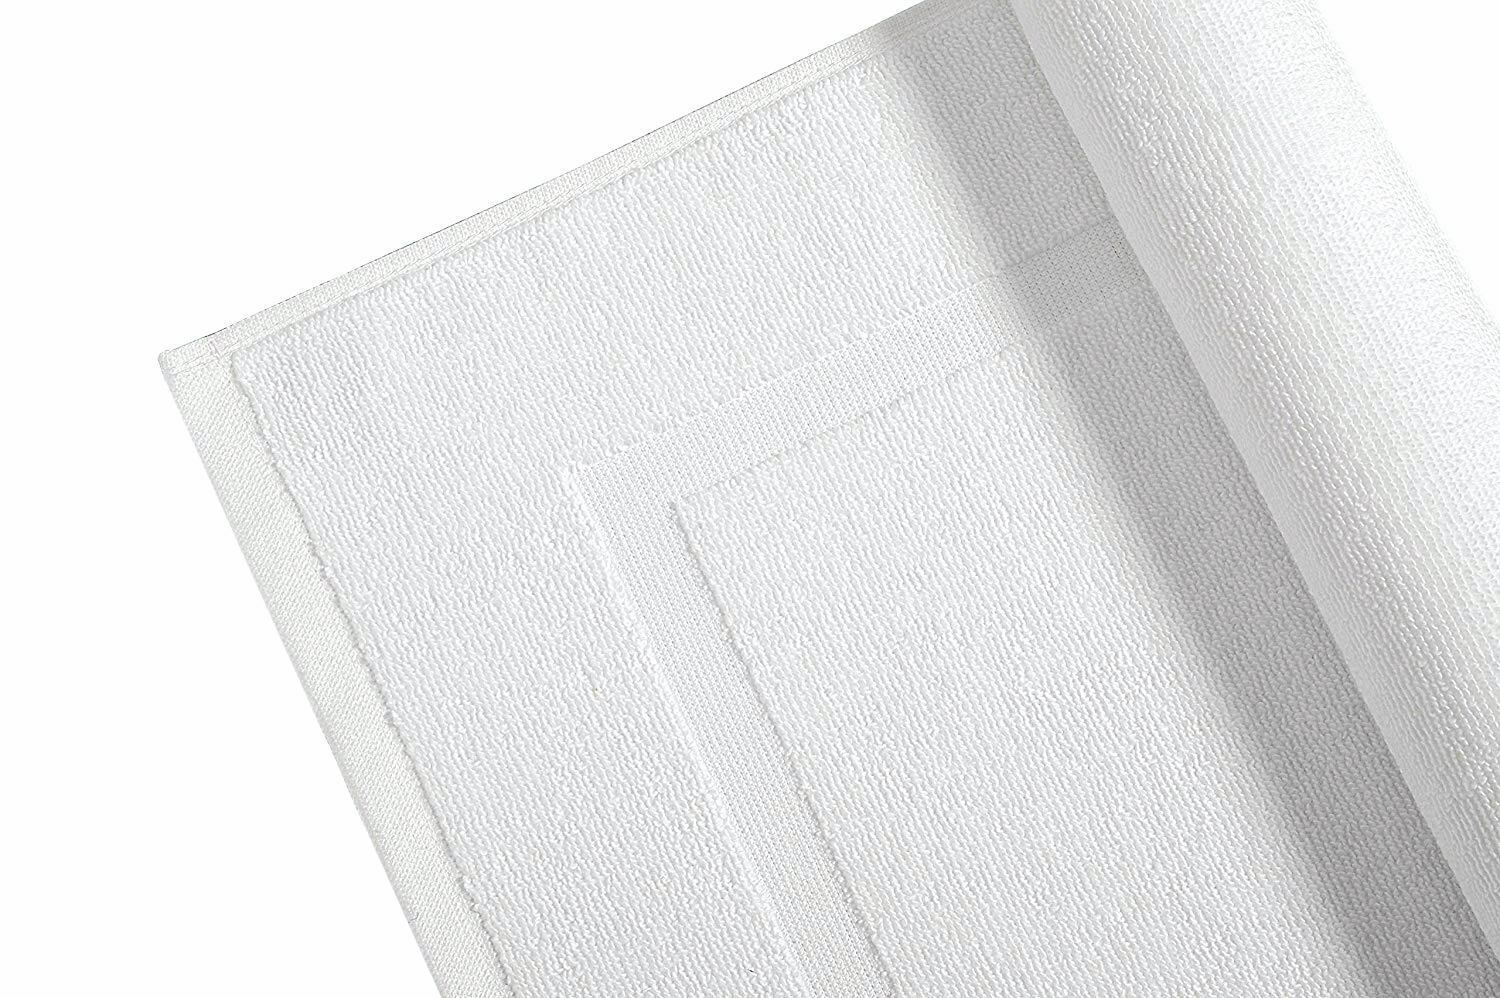 White Bath Mats Terry Towelling 100% Cotton Bathroom Rug 900 GSM Pack Set of 2